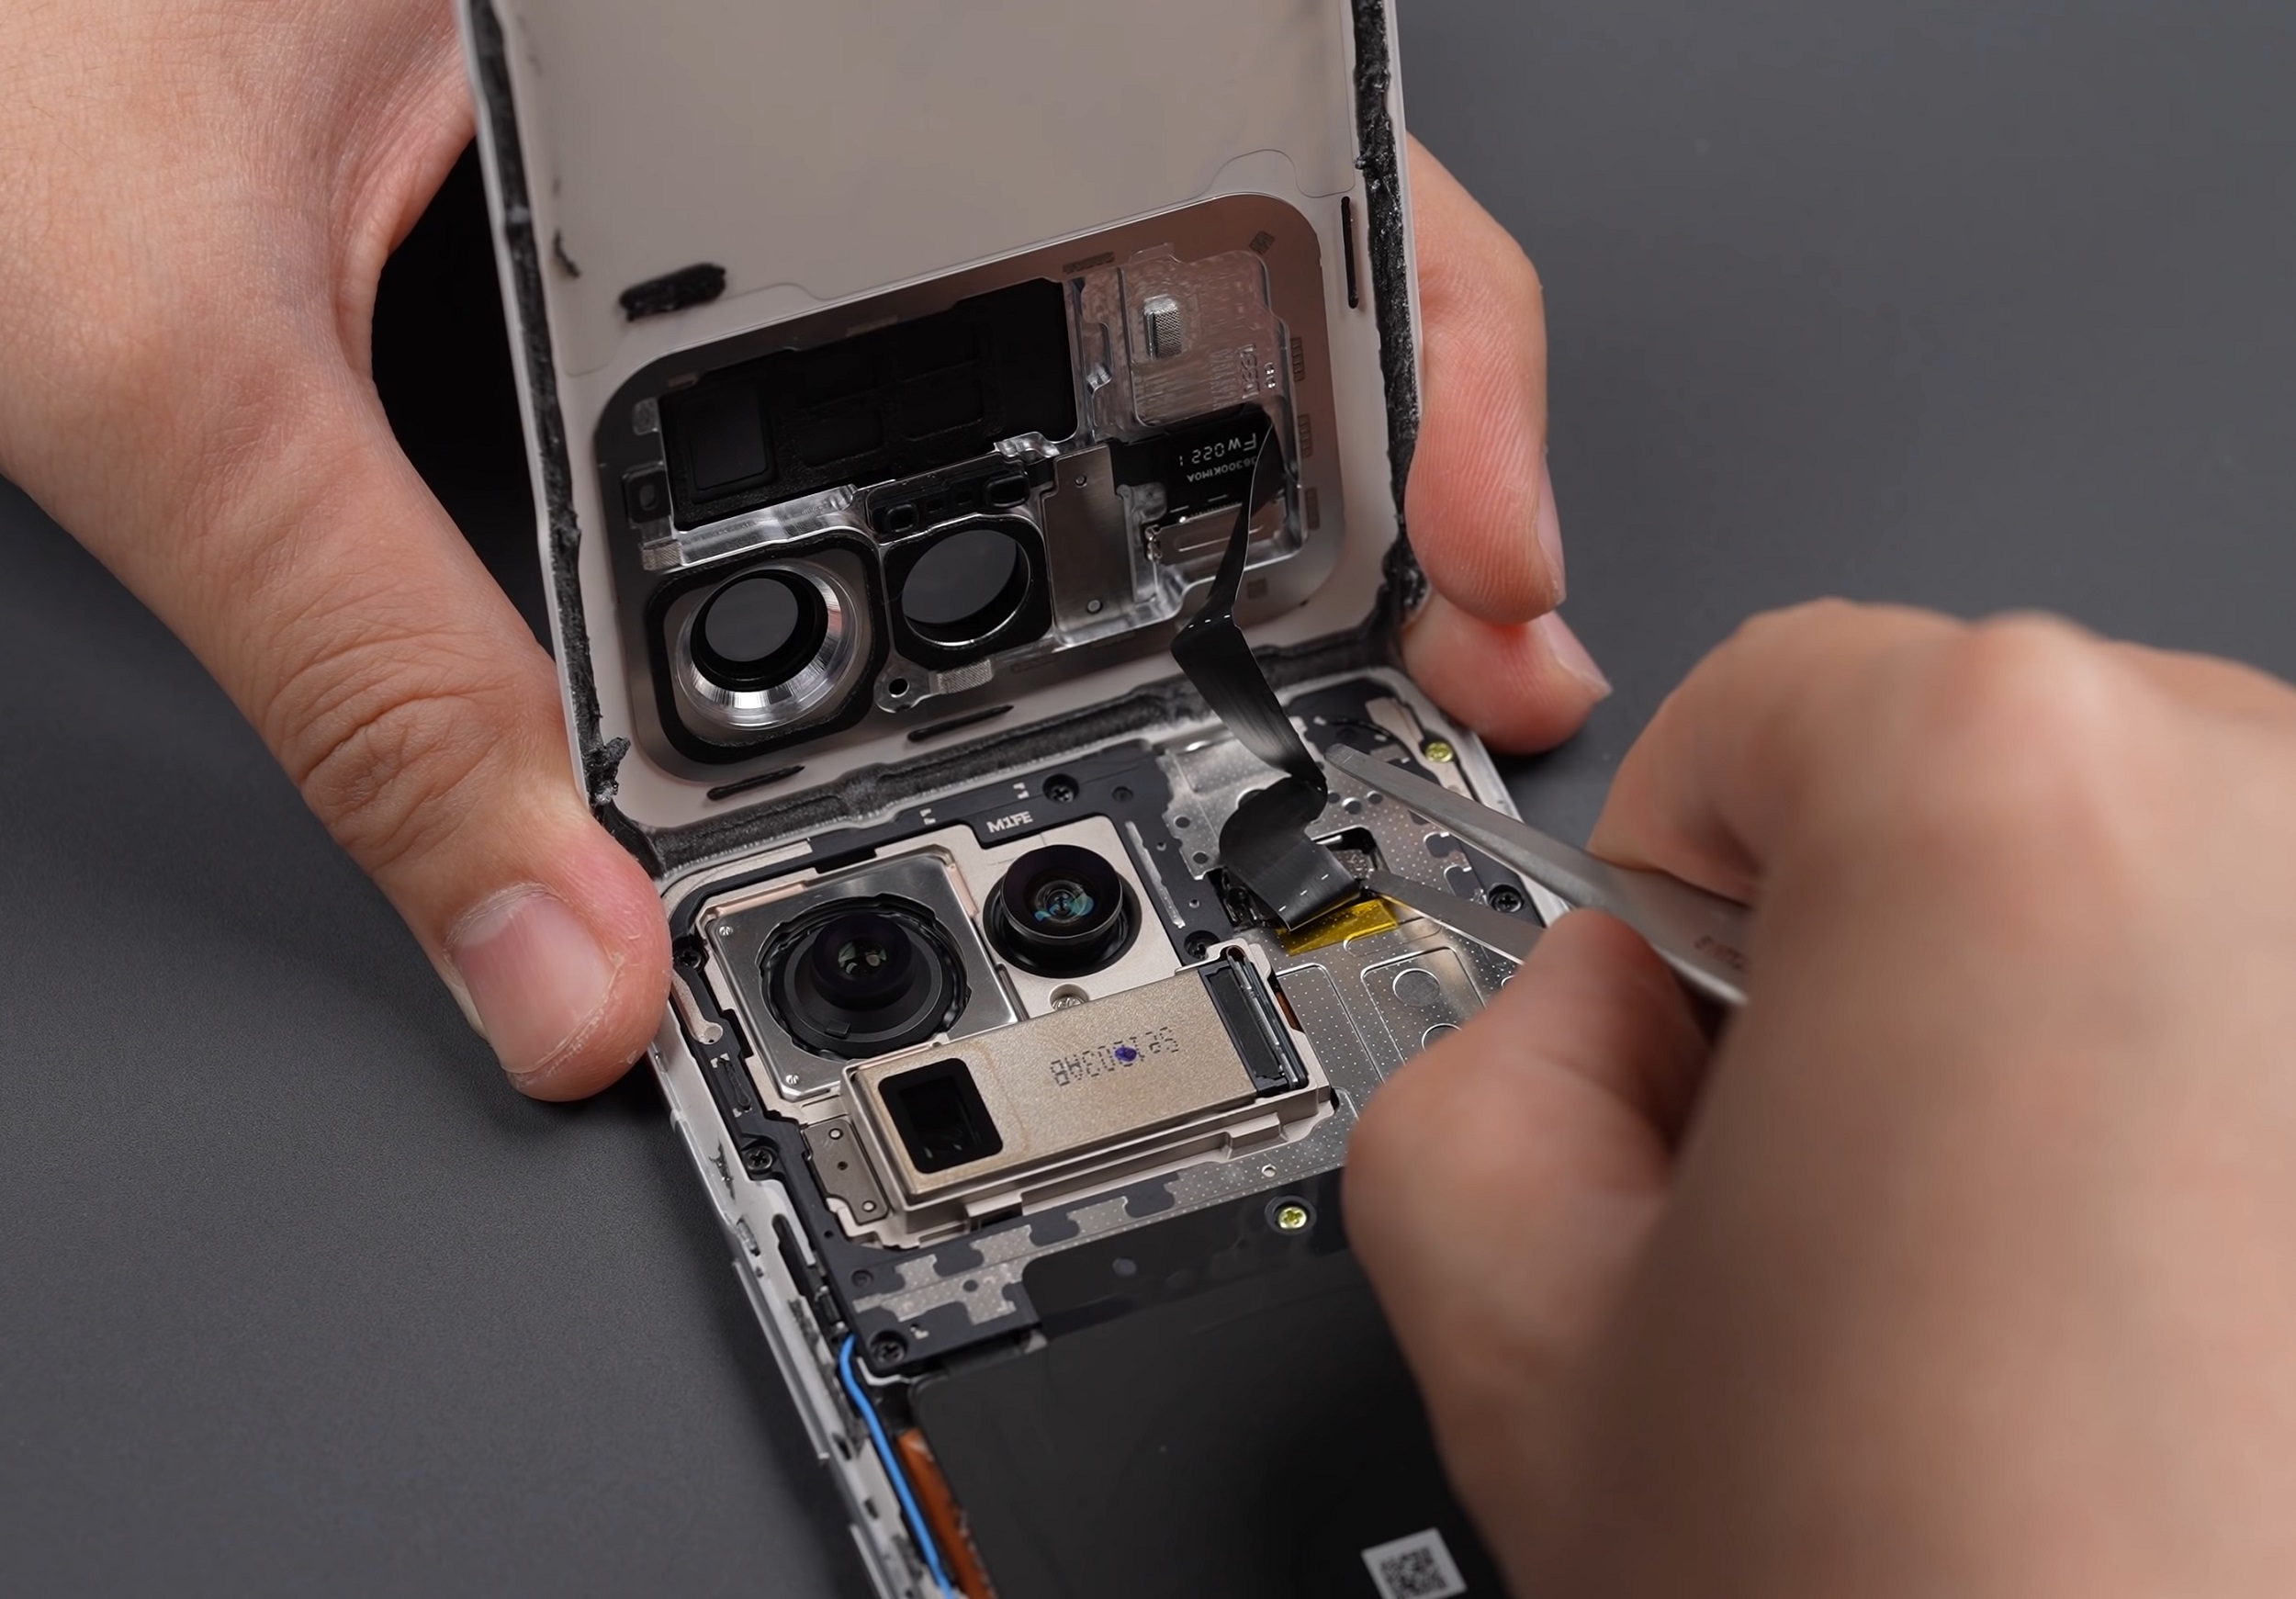 Xiaomi Mi 11 Ultra teardown and comparison video reveals giant camera and  complex cooling system - Notebookcheck.com - Newsy Today